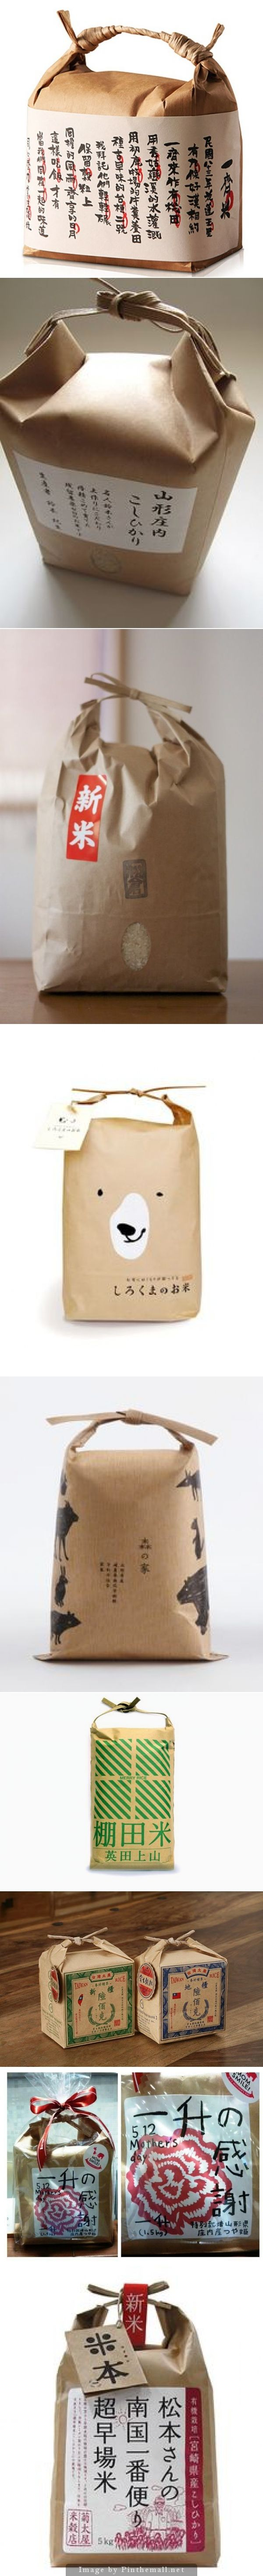 What you can do with brown paper and rice packaging design inspiration curated by Packaging Diva PD